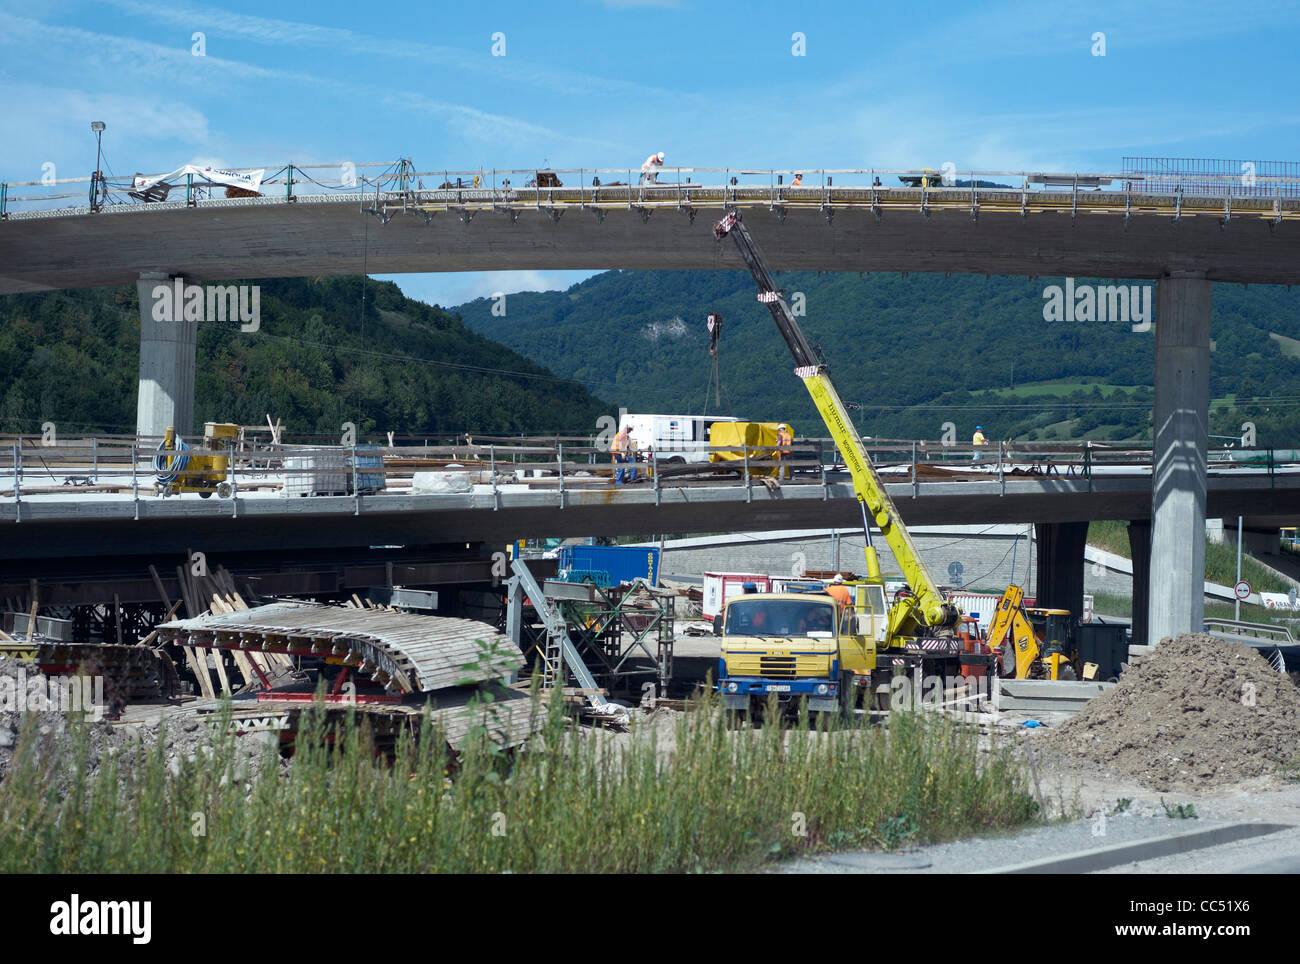 New bypass road under construction in Banska Bystrica Central Slovakia - Stock Image